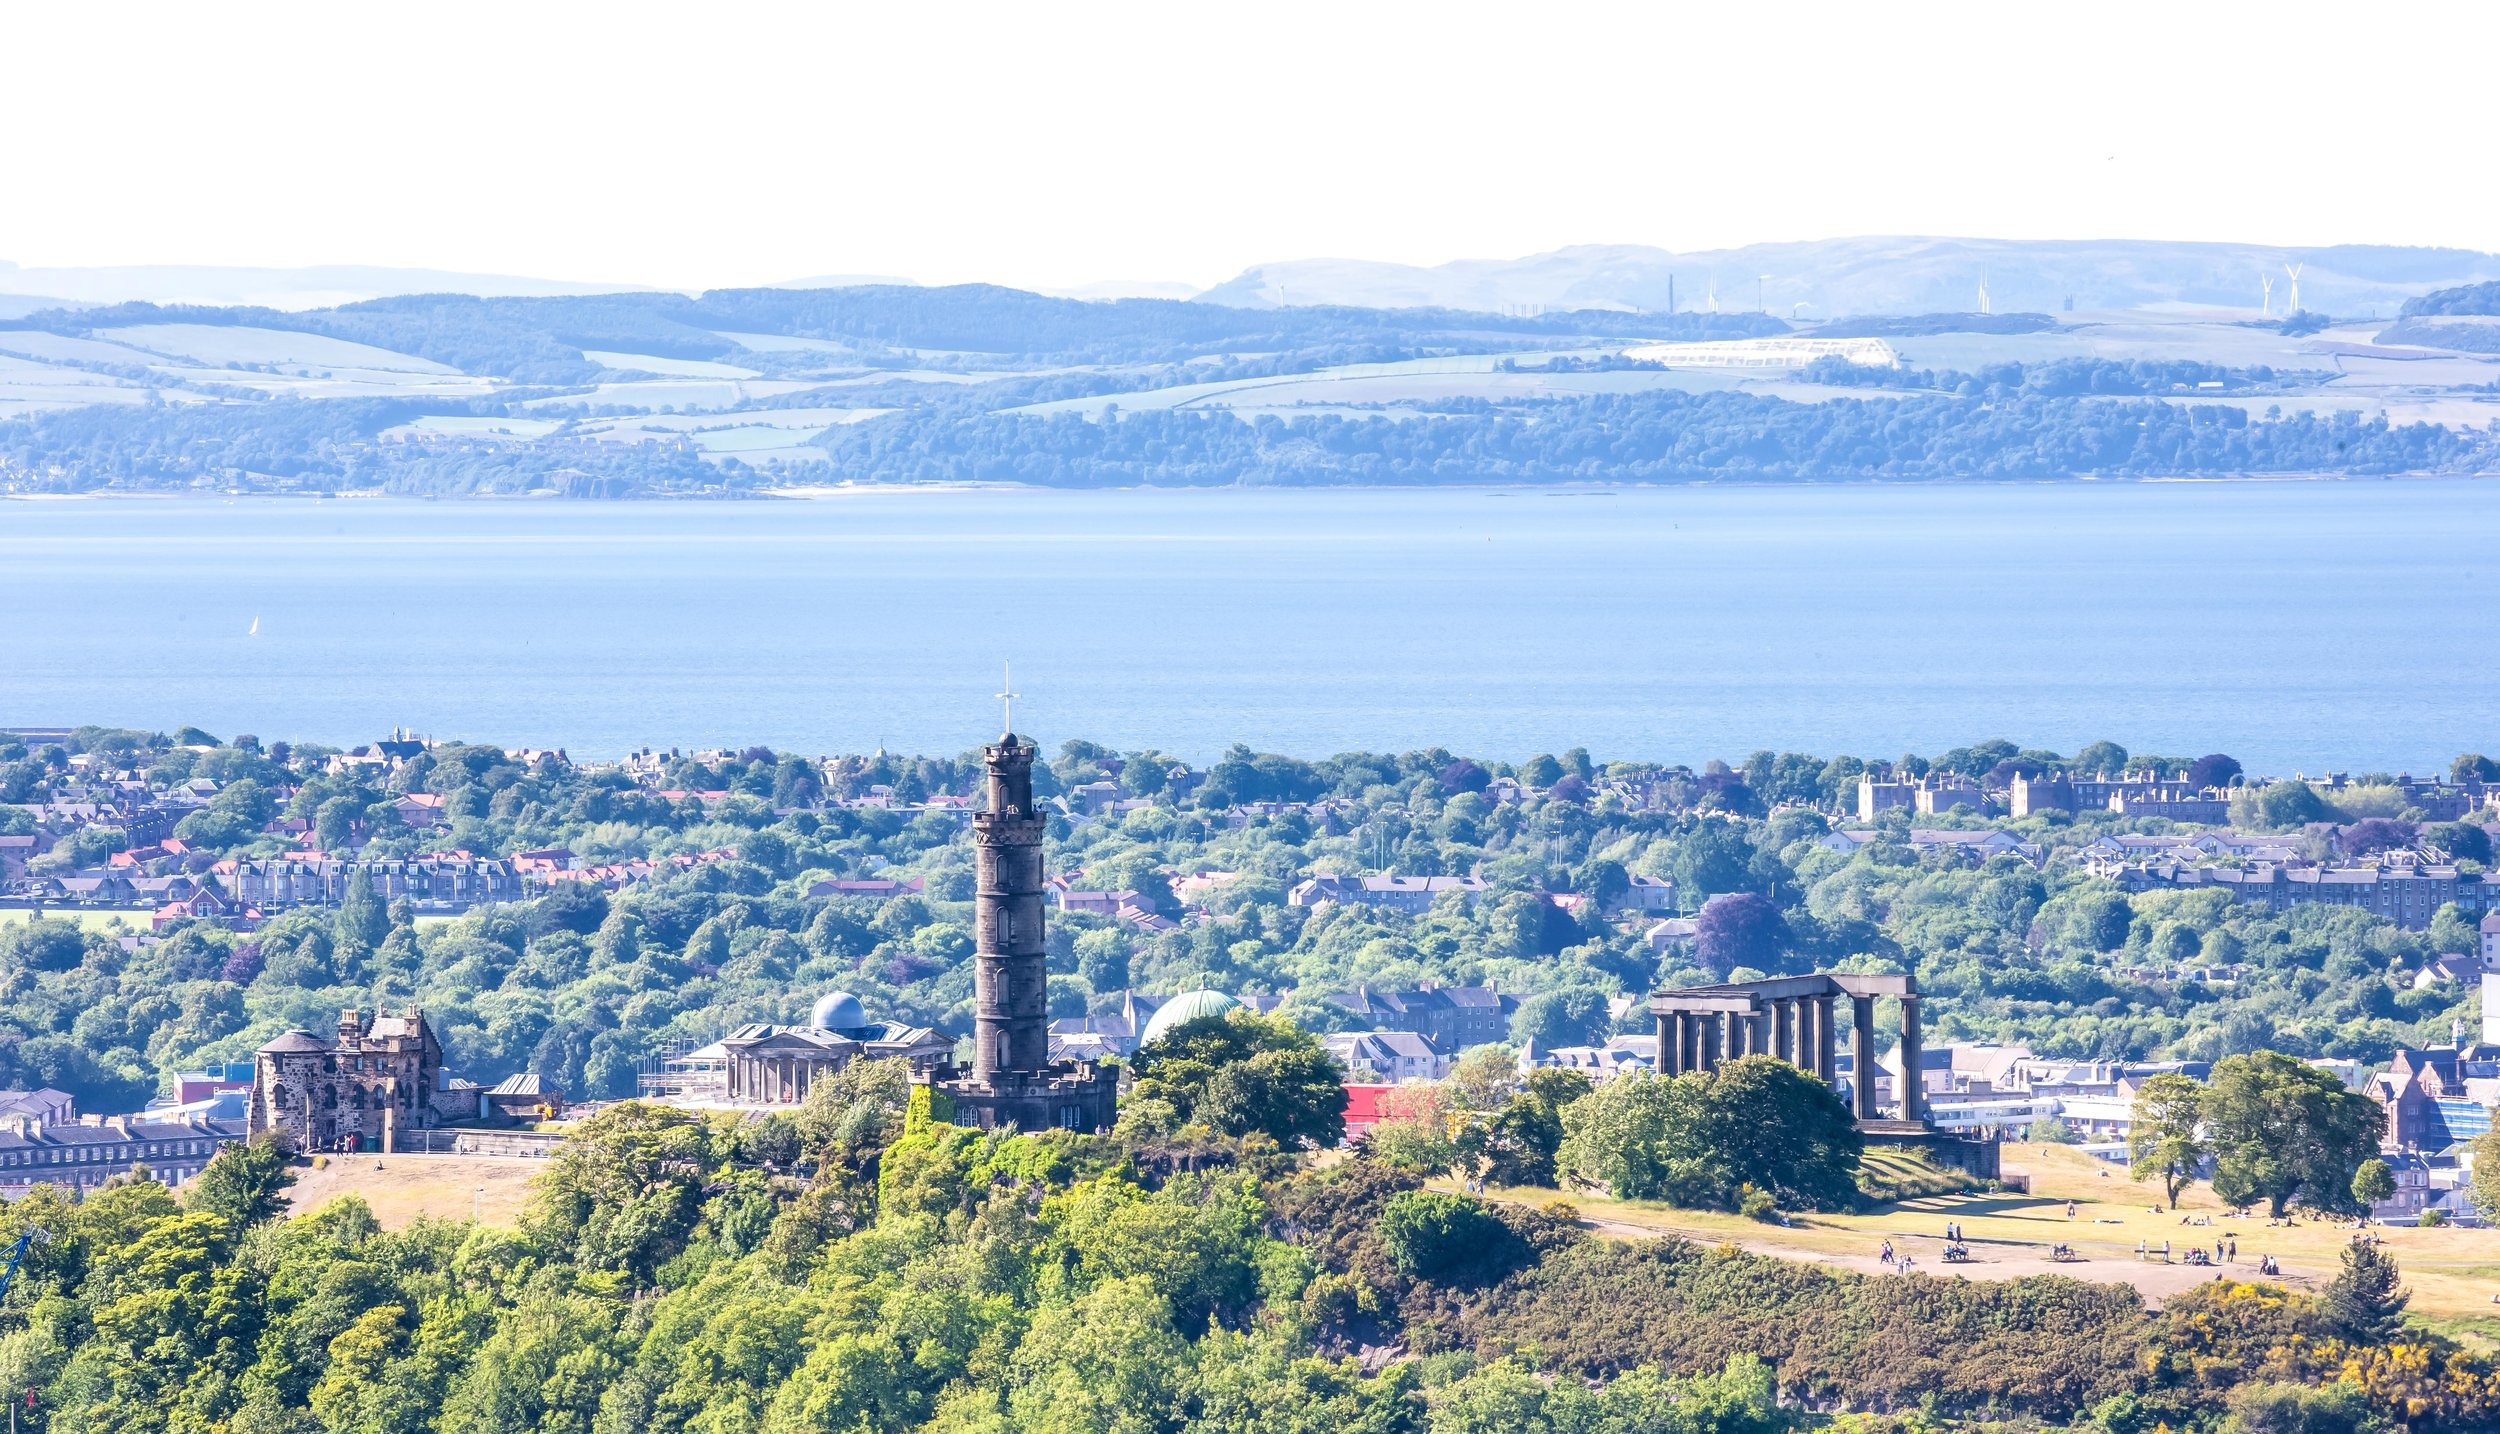 View of Calton Hill from Arthurs Seat